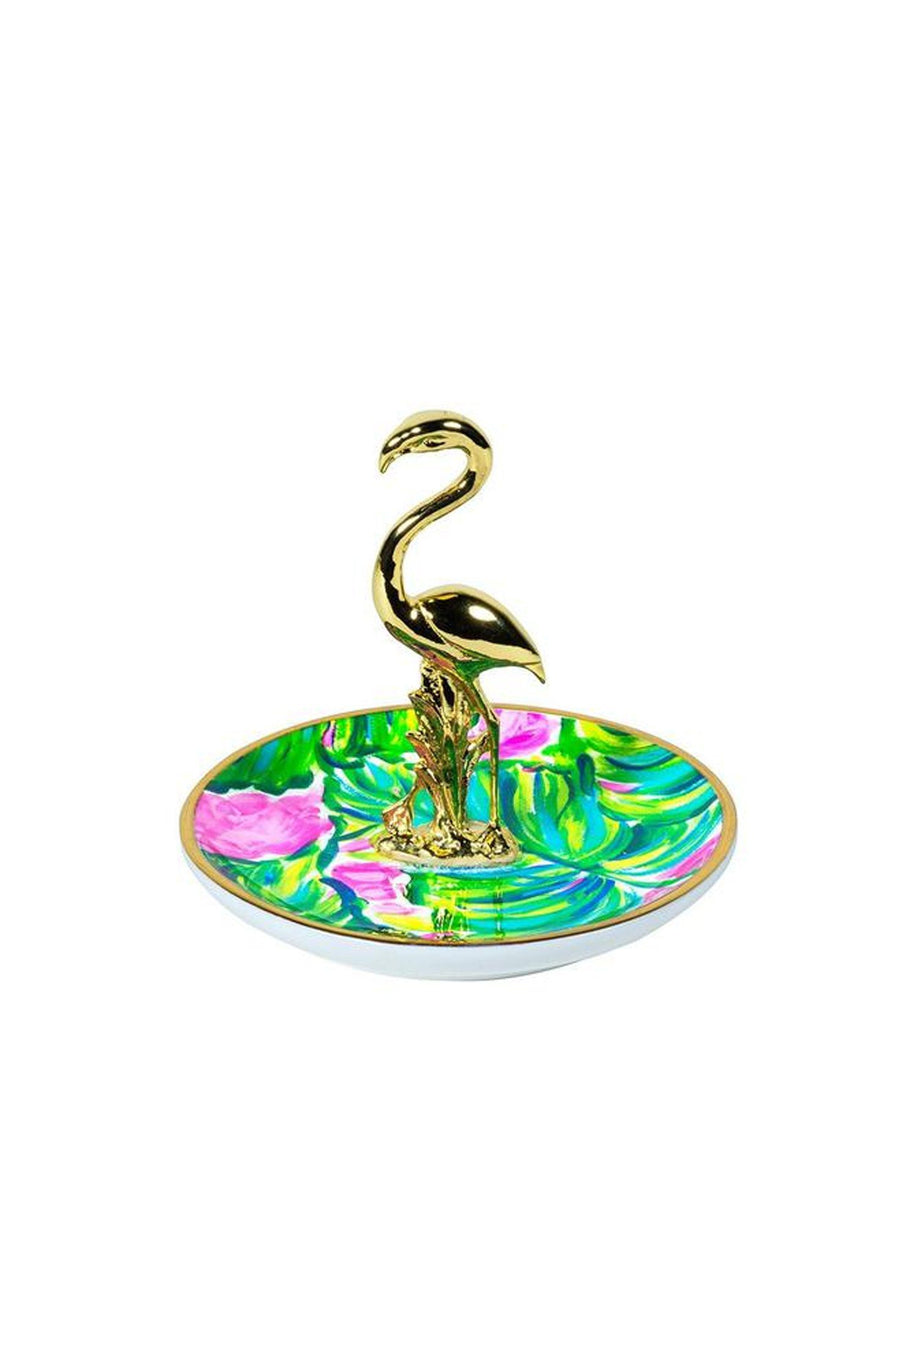 Lilly Pulitzer Ring Holder, Accessories, Lilly Pulitzer, - Sunny and Southern,